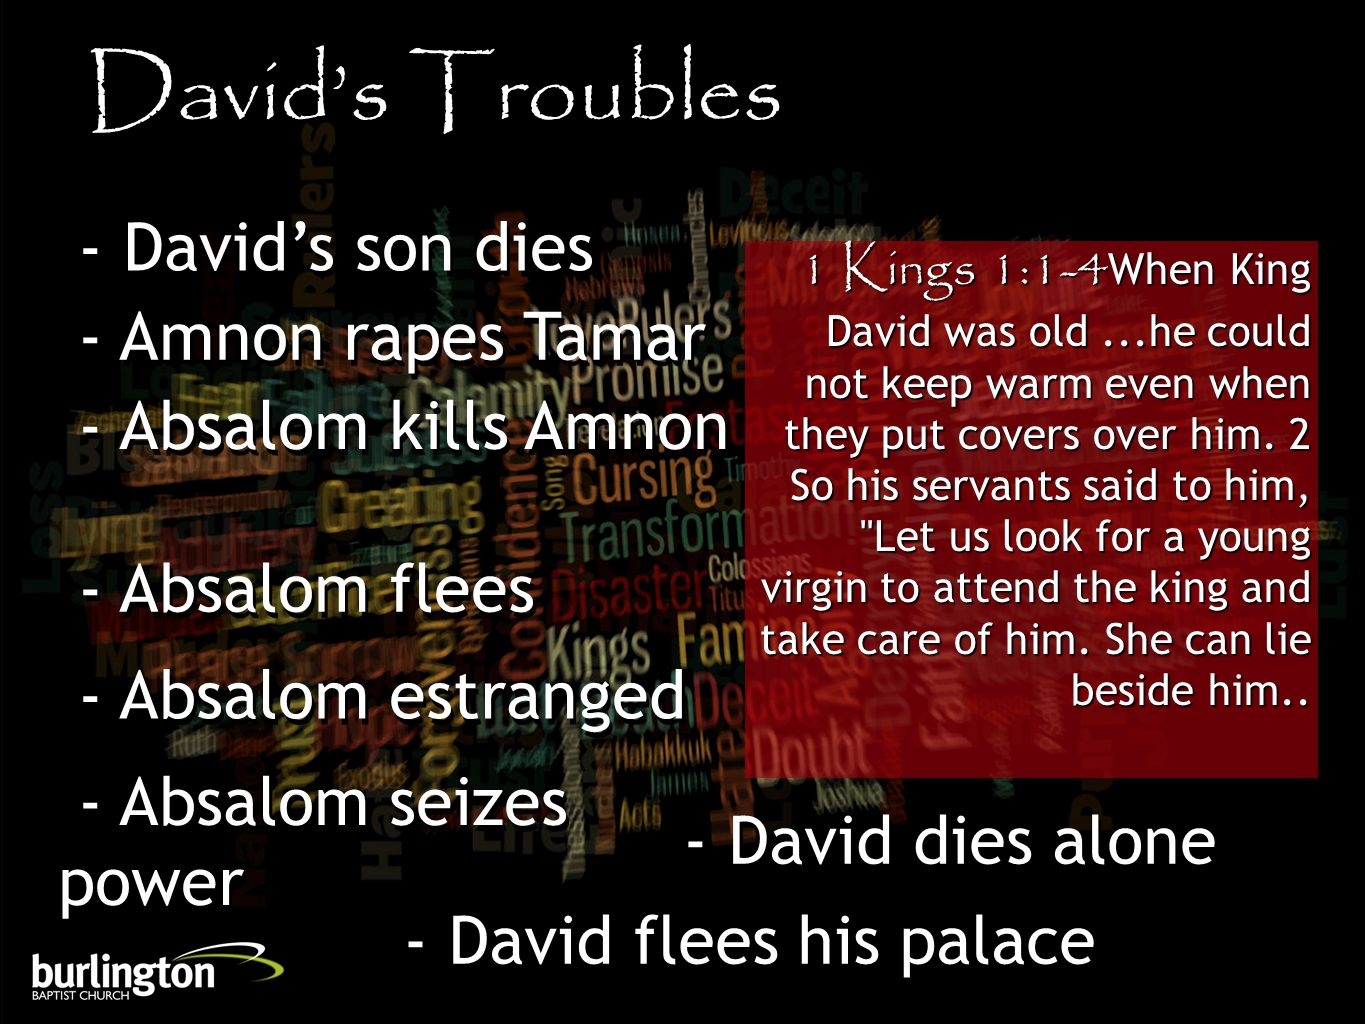 1 Kings 1:1-4When King David was old...he could not keep warm even when they put covers over him.